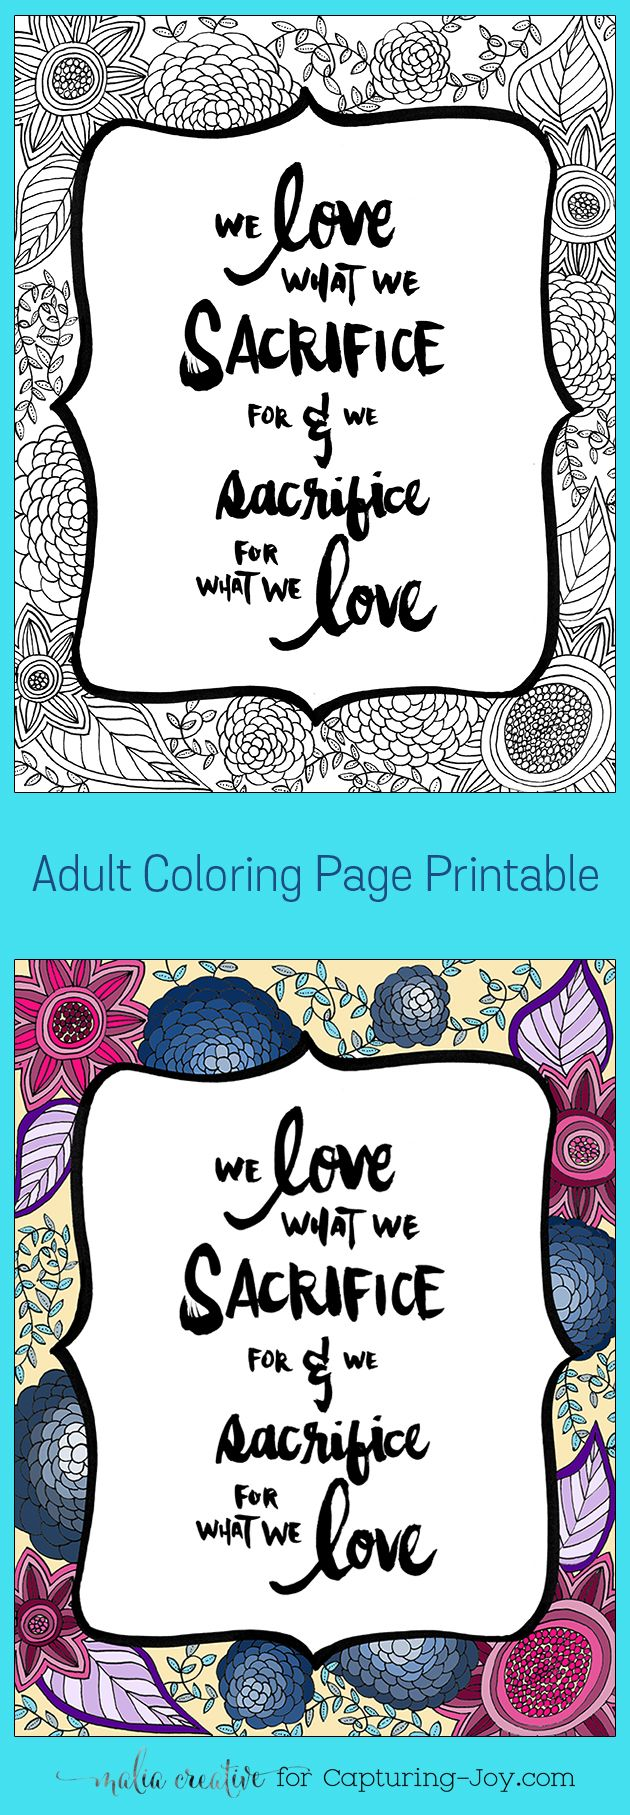 Fun adult coloring page. Free coloring printable. #coloringpage